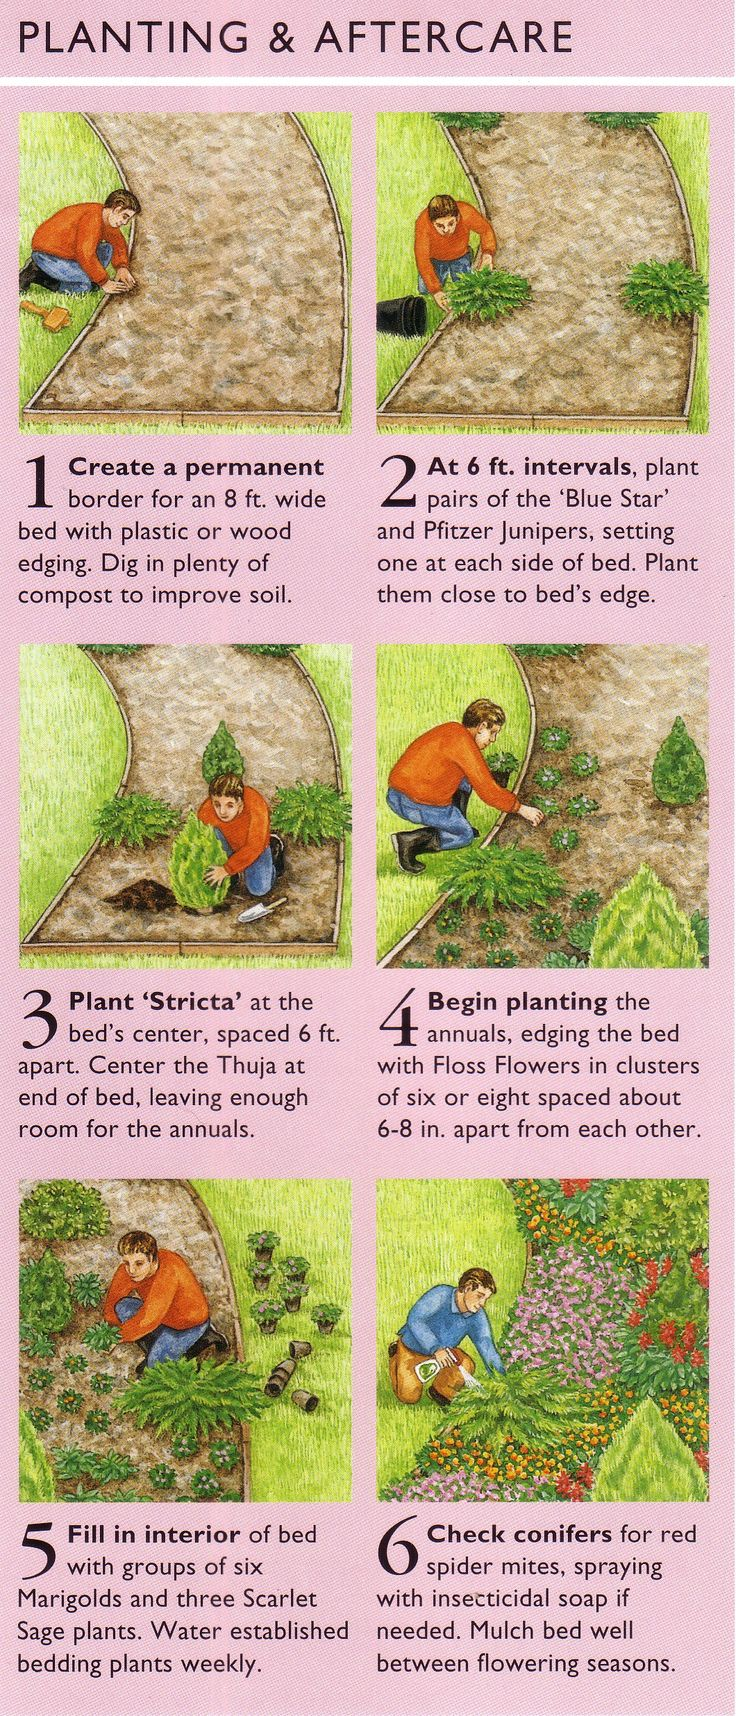 Vegetable garden plans for beginners ayanahouse - 189 Best Landscaping Ideas Images On Pinterest Garden Ideas Landscaping And Backyard Ideas